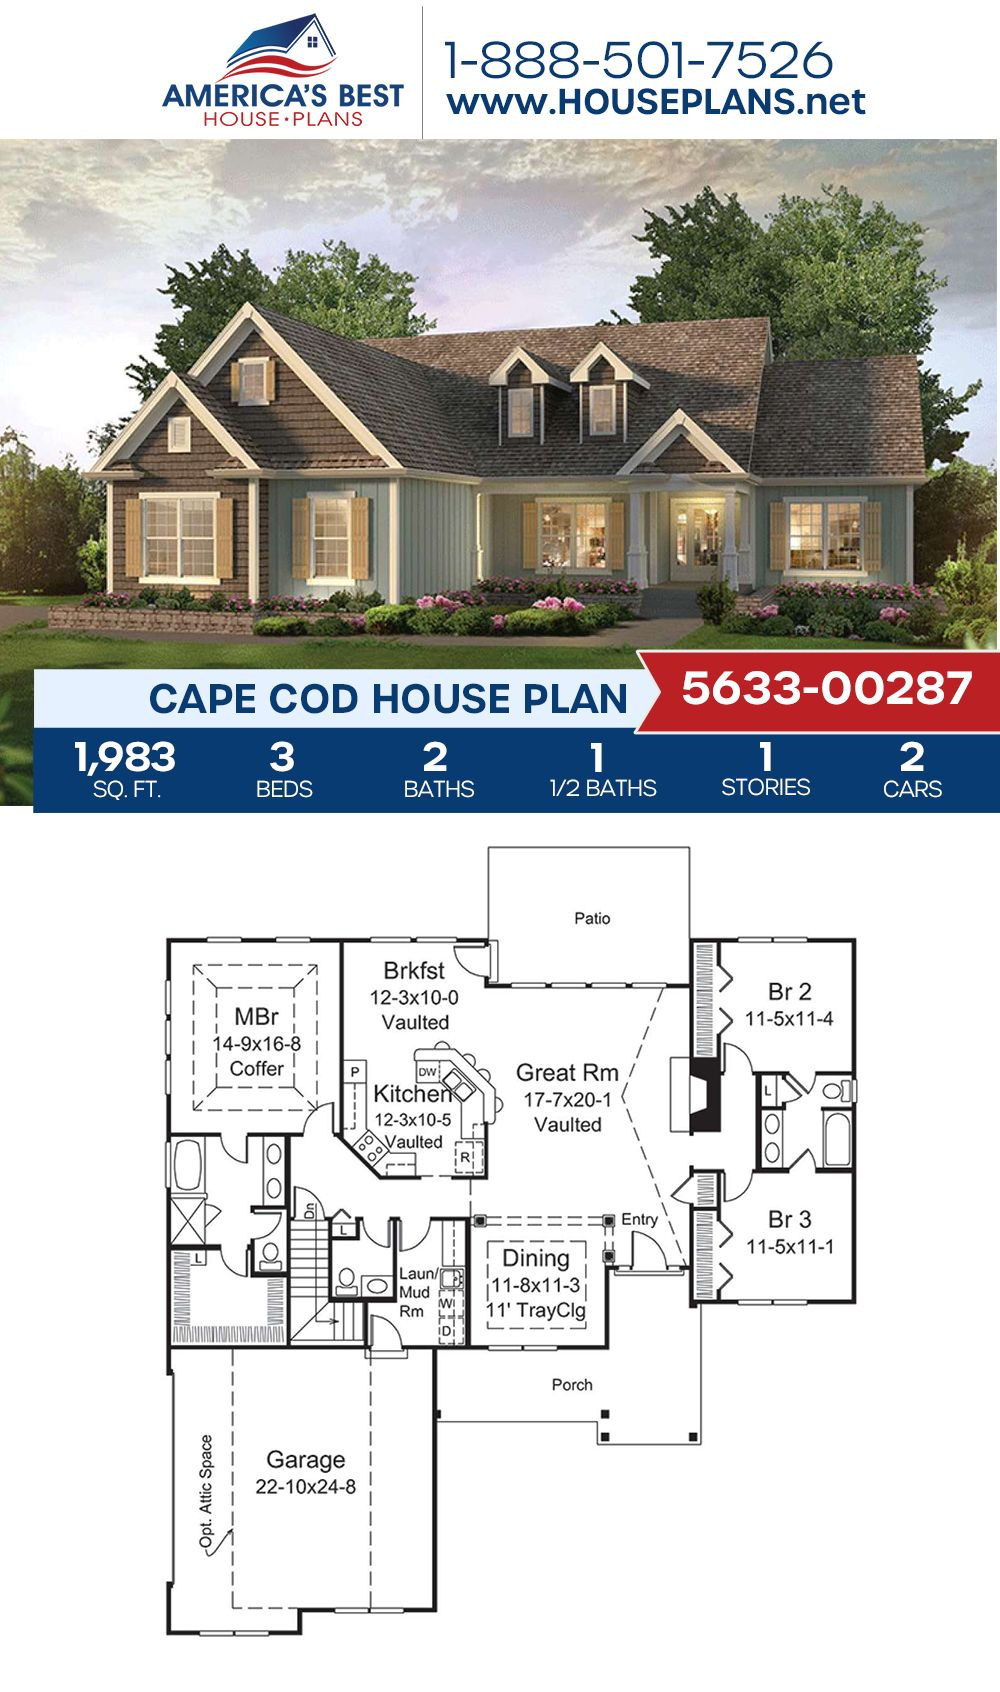 House Plan 5633 00287 Cape Cod Plan 1 983 Square Feet 3 Bedrooms 2 5 Bathrooms In 2020 Lake House Plans Cape Cod House Plans Craftsman House Plans